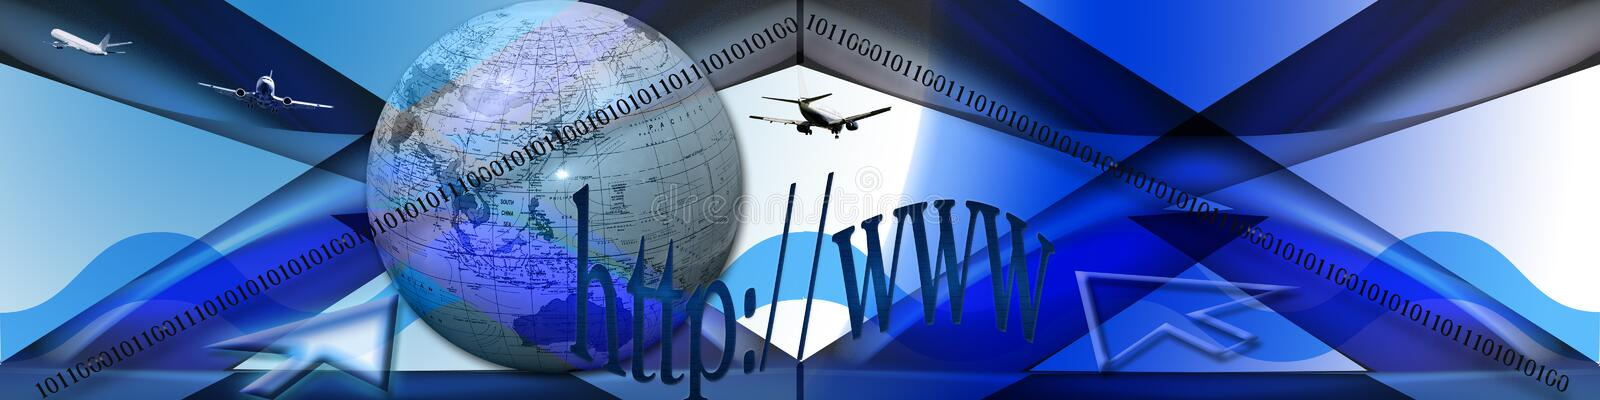 Exploring the Internet. This banner has an abstract background with waves. The globe, binary codes, planes and text are symbols and leading to the title vector illustration